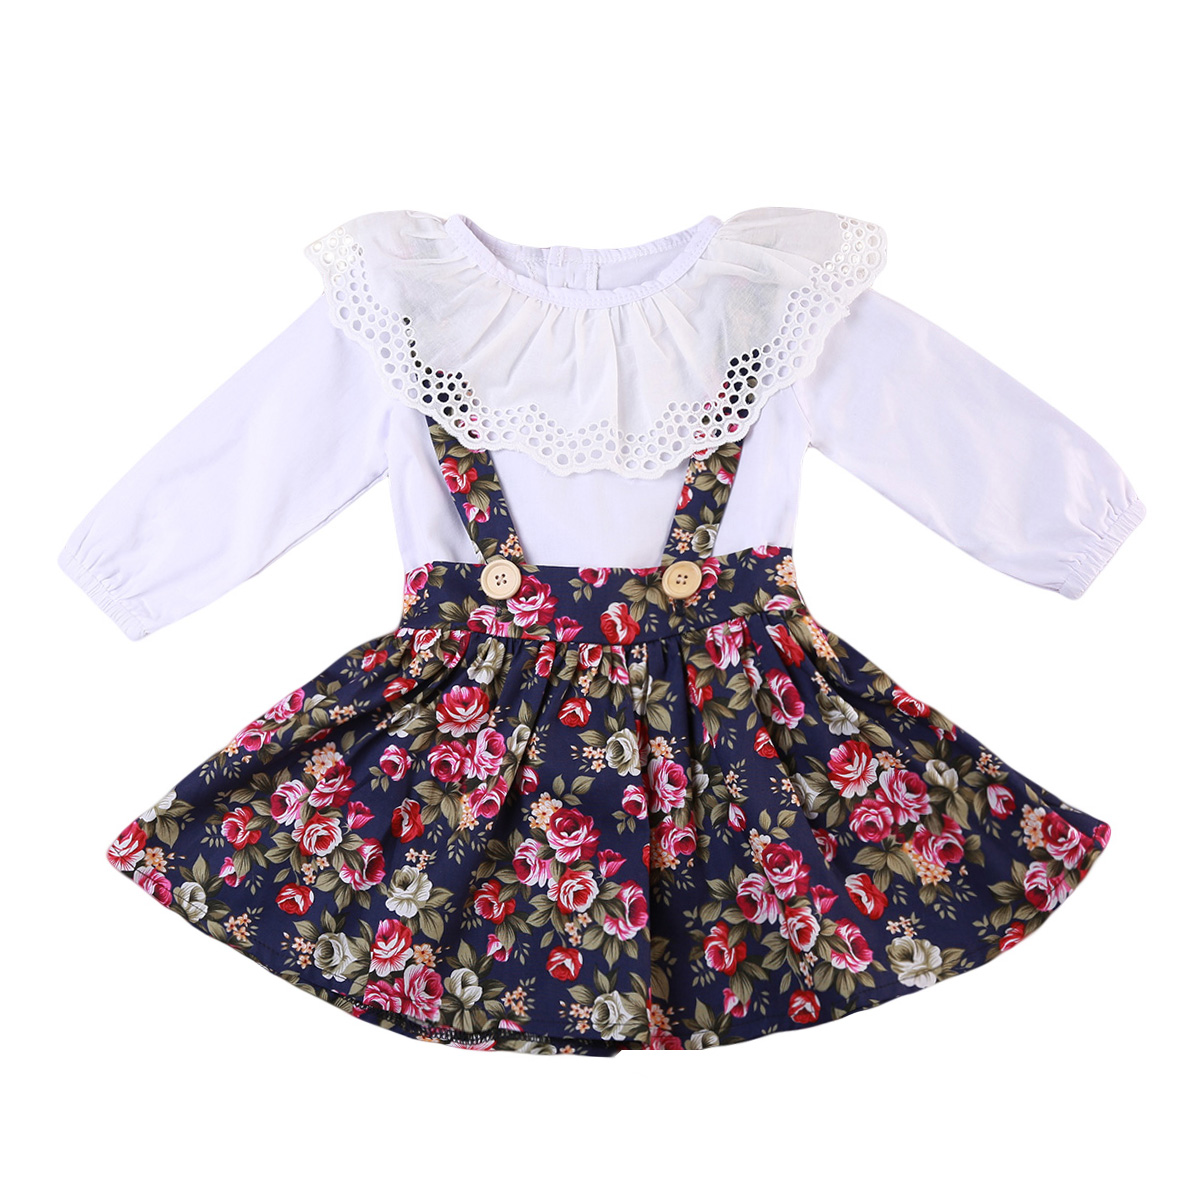 Kids Baby Girls Clothes Sets Top T Shirt Long Sleeve Princess Party Pageant kirts Cotton Cute Kids Girl Clothing humor bear baby girl clothes set new sequins letter long sleeve t shirt stars skirt 2pcs girl clothing sets kids clothes